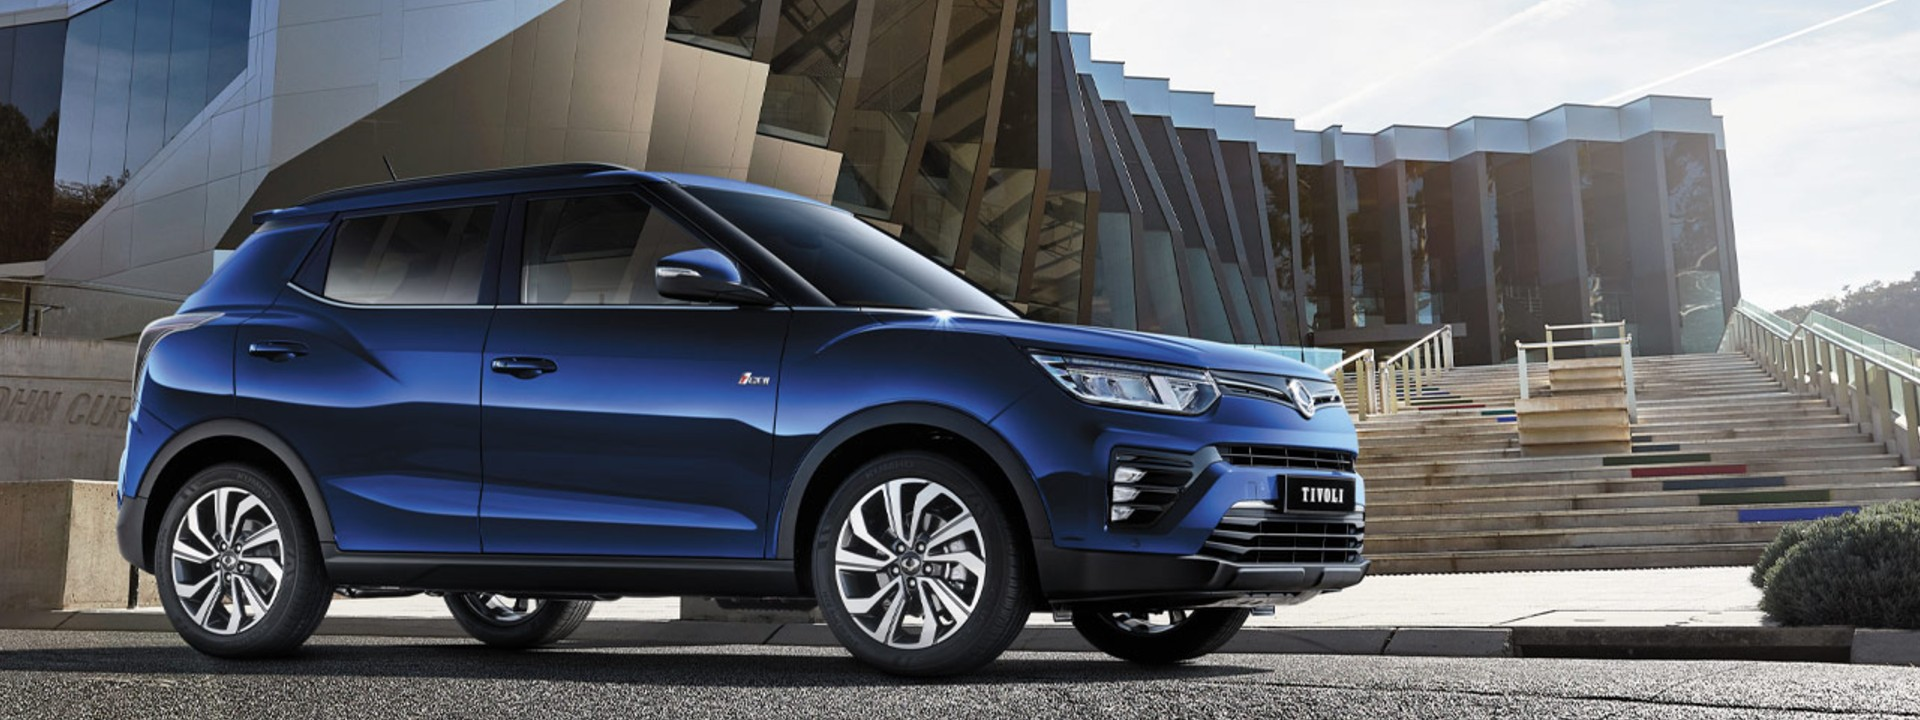 SsangYong Service Plans and Fixed Price SsangYong Servicing